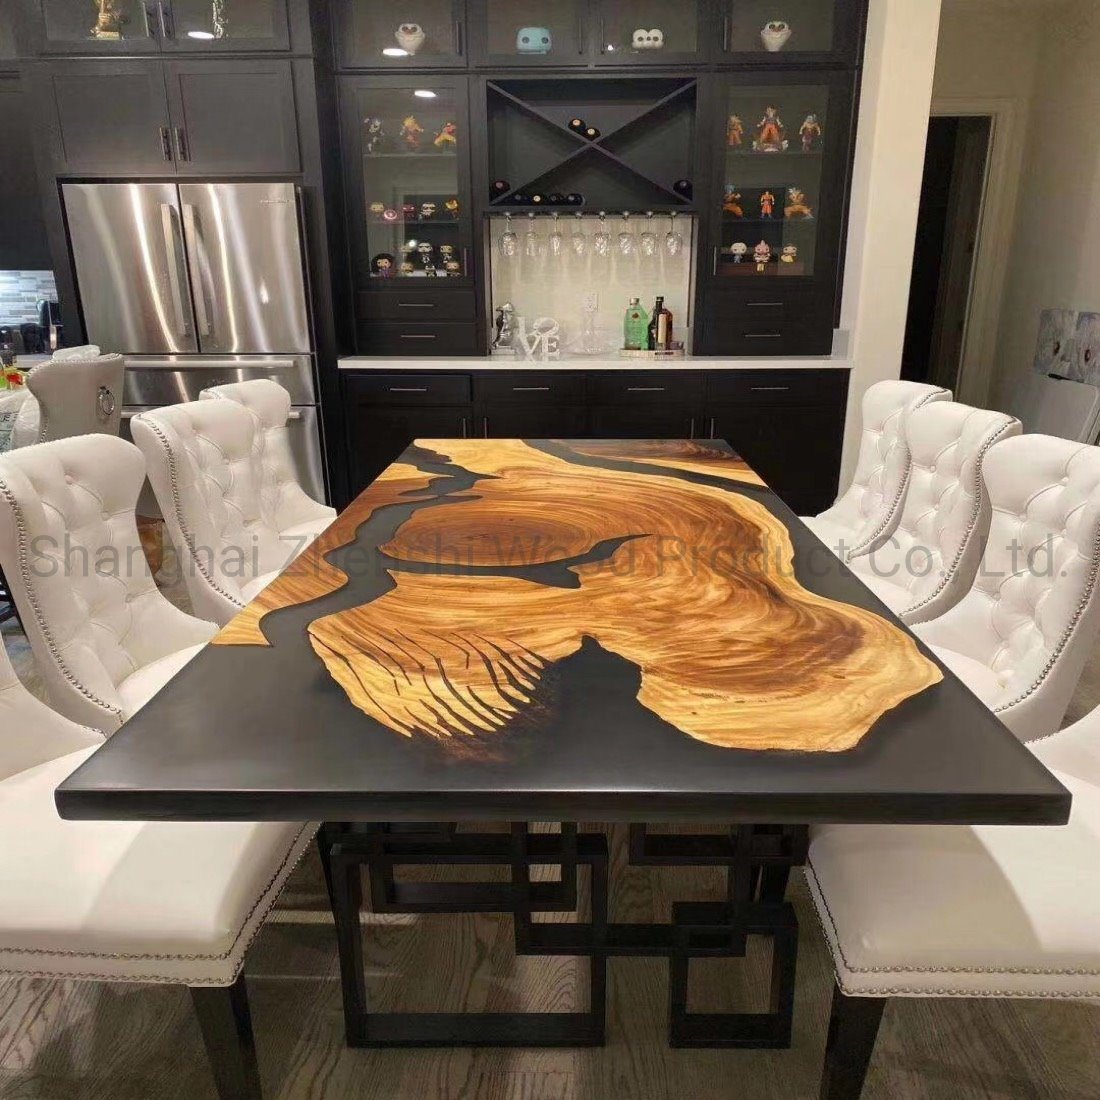 China Wood and Resin Coffee Table Resin Epoxy Table Top Dining ...